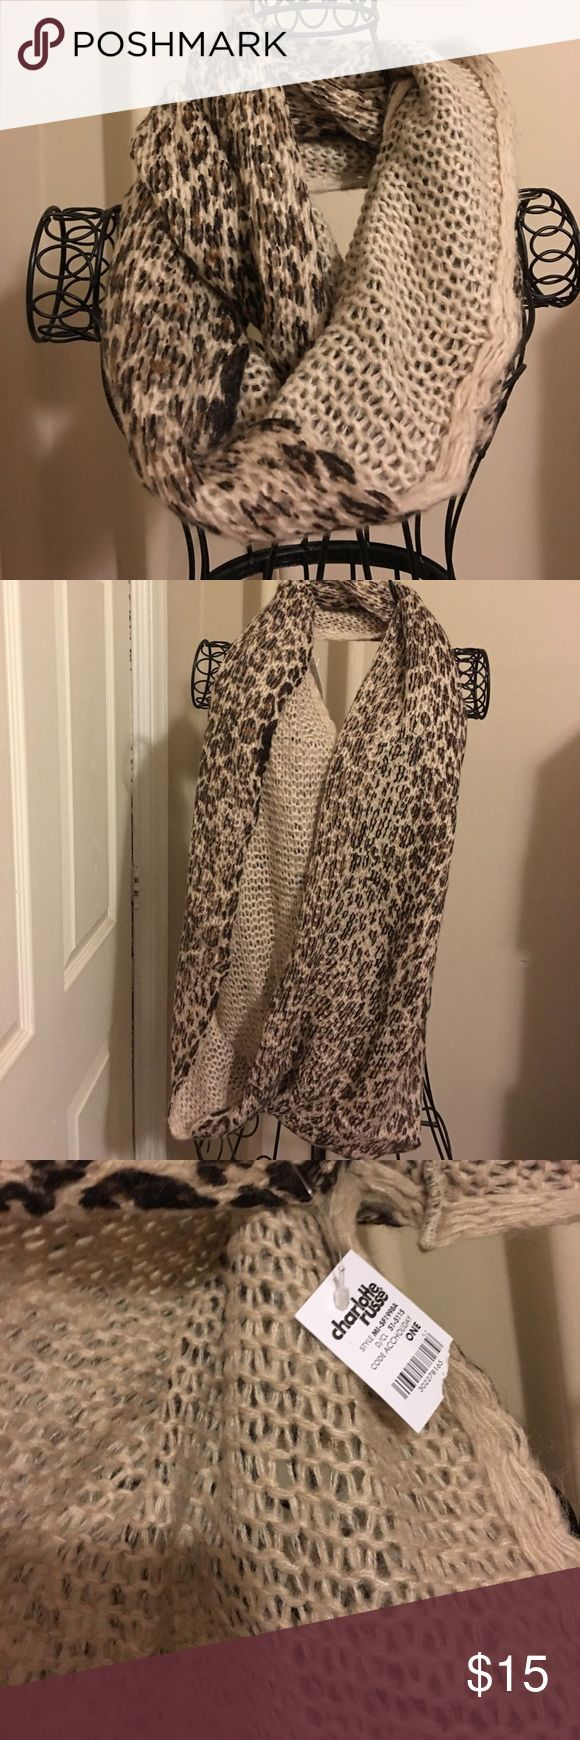 Super soft Charlotte Russe cheetah scarf Can wear around the shoulders, layered or long like a cowl necklace. Cheetah leopard animal print scarfs.  Soft beautiful knit.  New. Charlotte Russe Accessories Scarves & Wraps